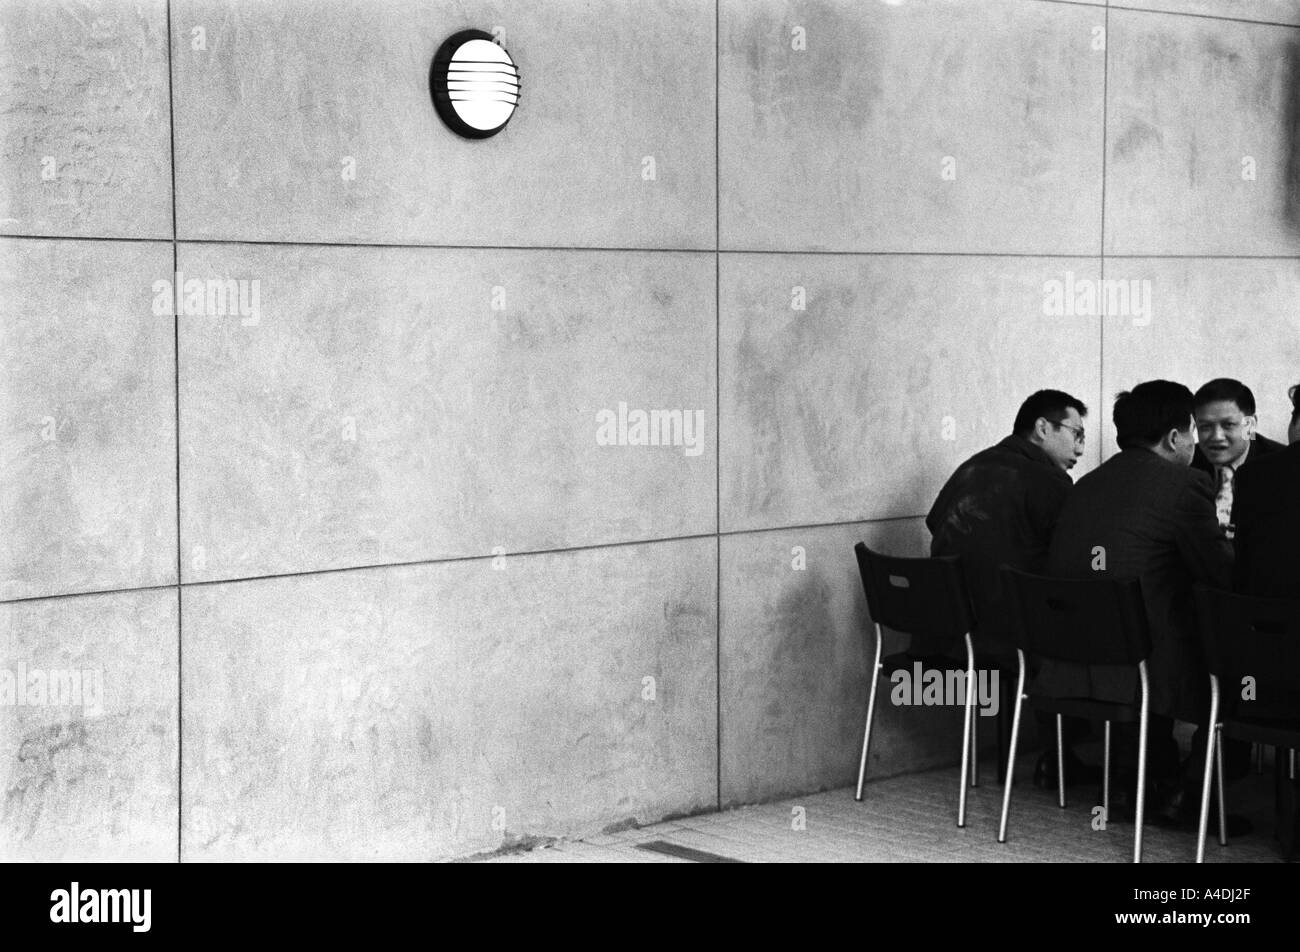 Businessmen in a meeting. Hong Kong, Peoples' Republic of China, HKSAR - Stock Image